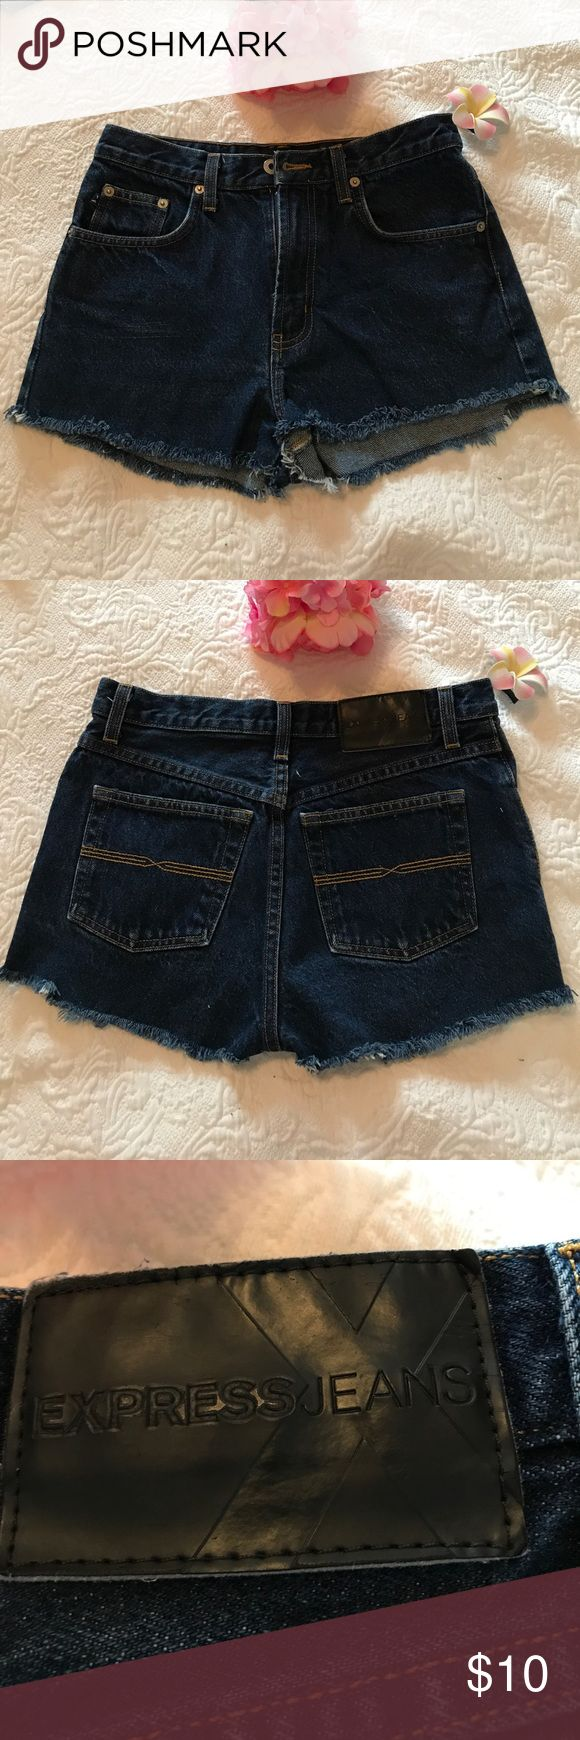 Shorts 🌞Express Blue Shorts, Size 2/3 R Blue Jeans Shorts, From Express, Size 2/3, they were Jeans my daughter cut them and converted to shorts. Express Shorts Jean Shorts